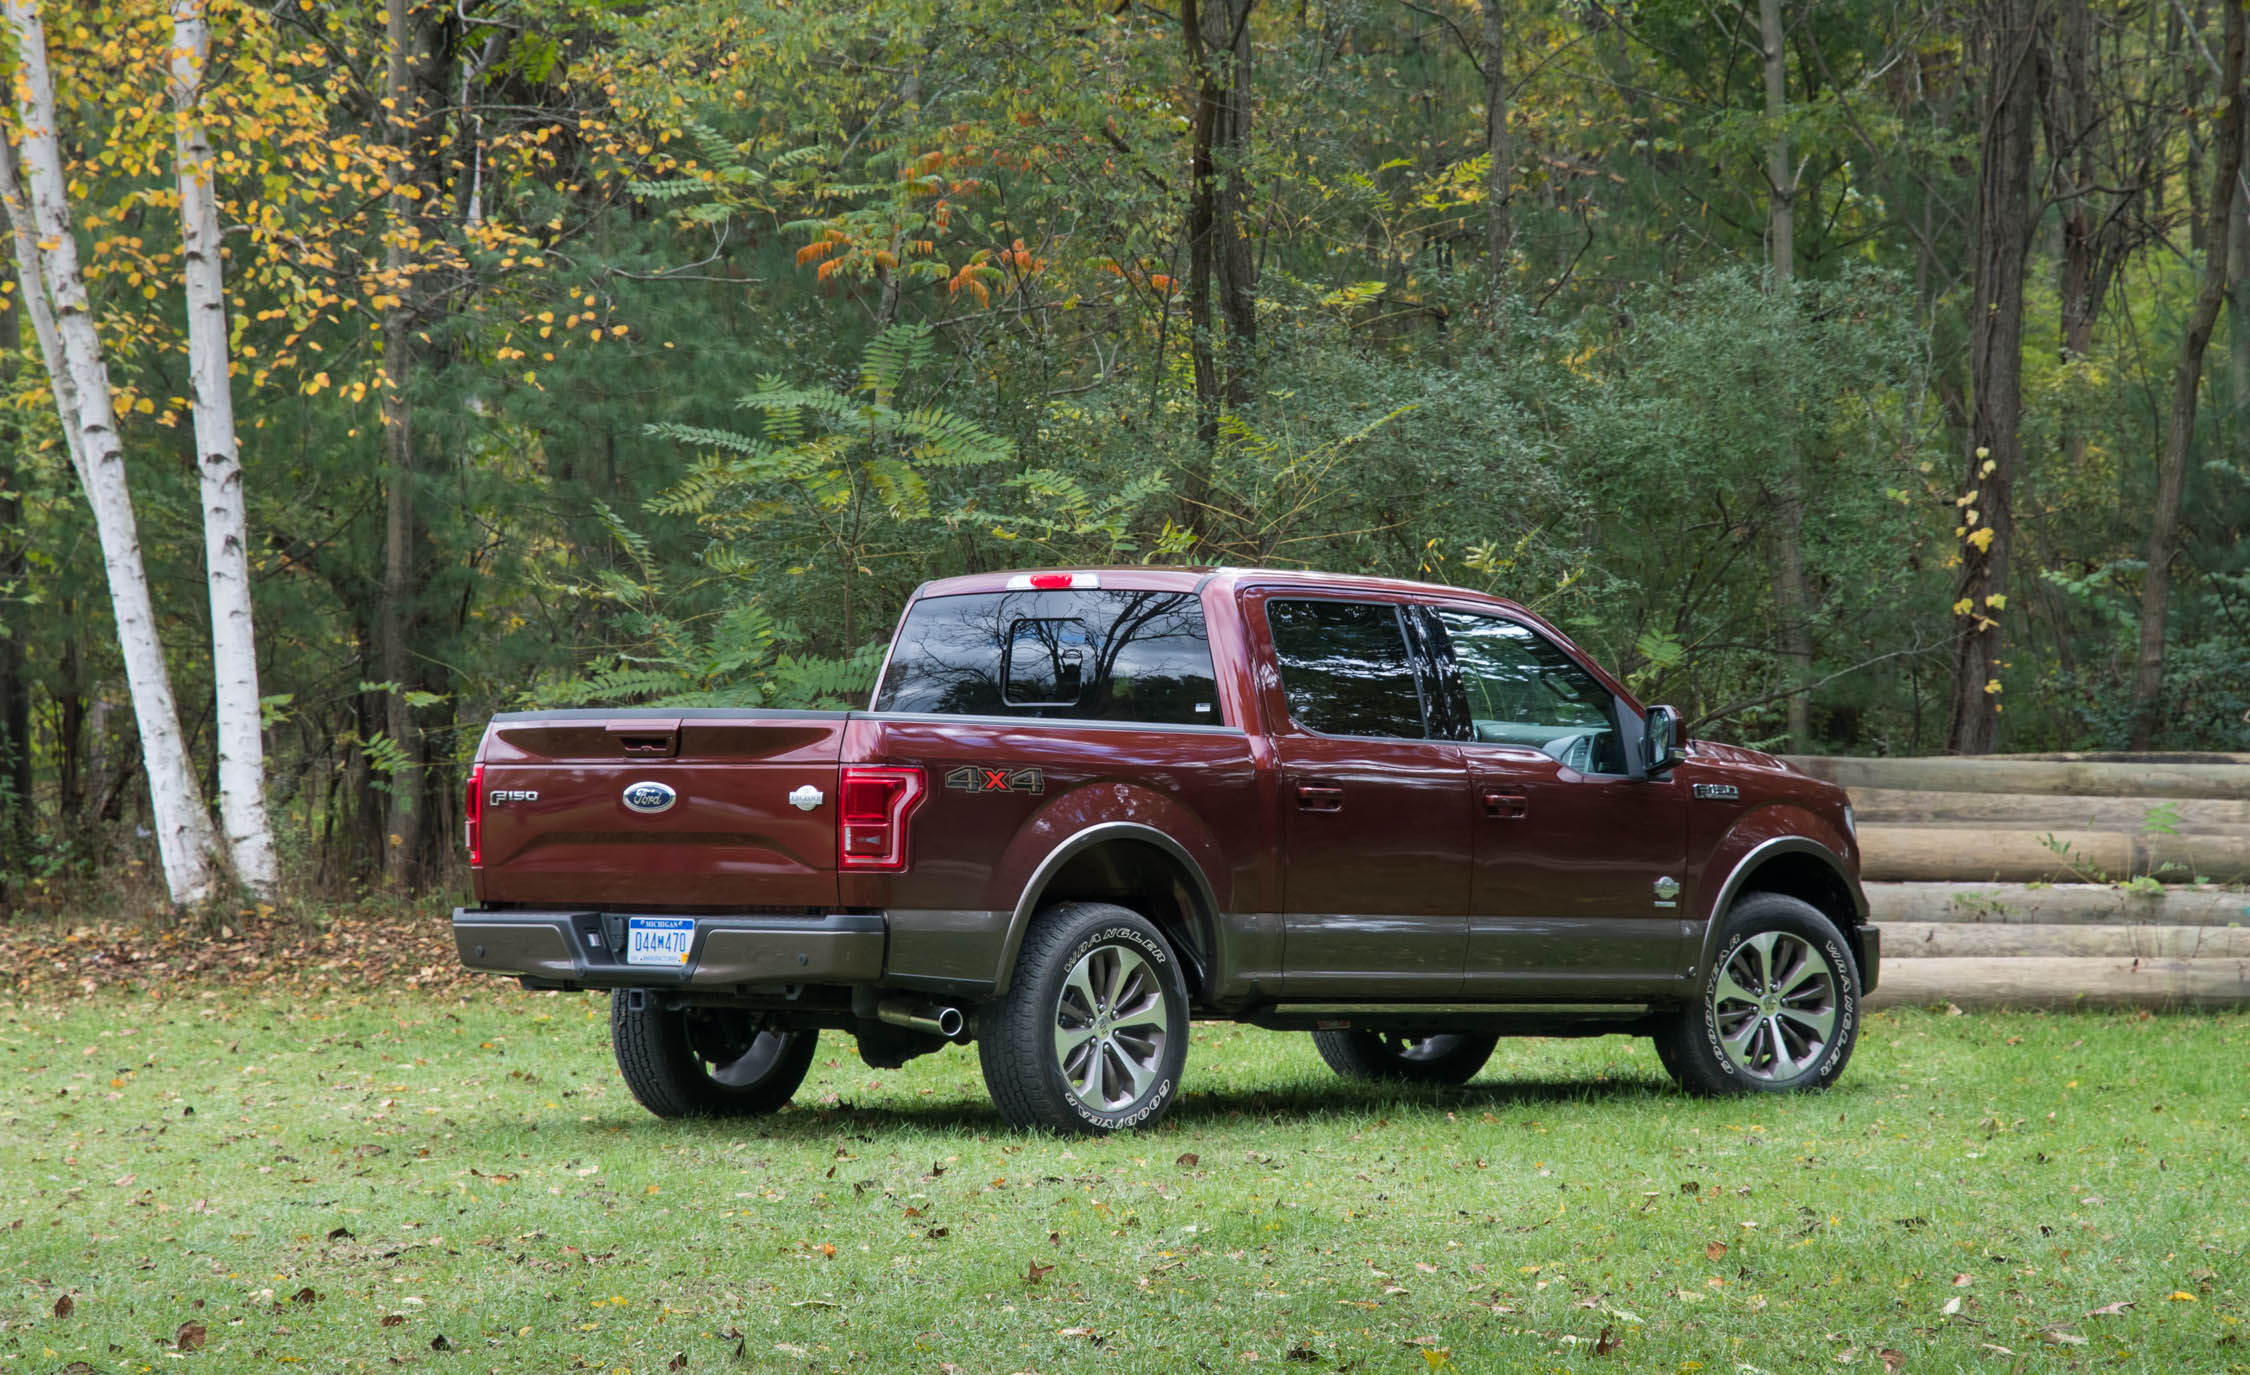 2017 Ford F 150 King Ranch Exterior Rear And Side (Photo 6 of 50)